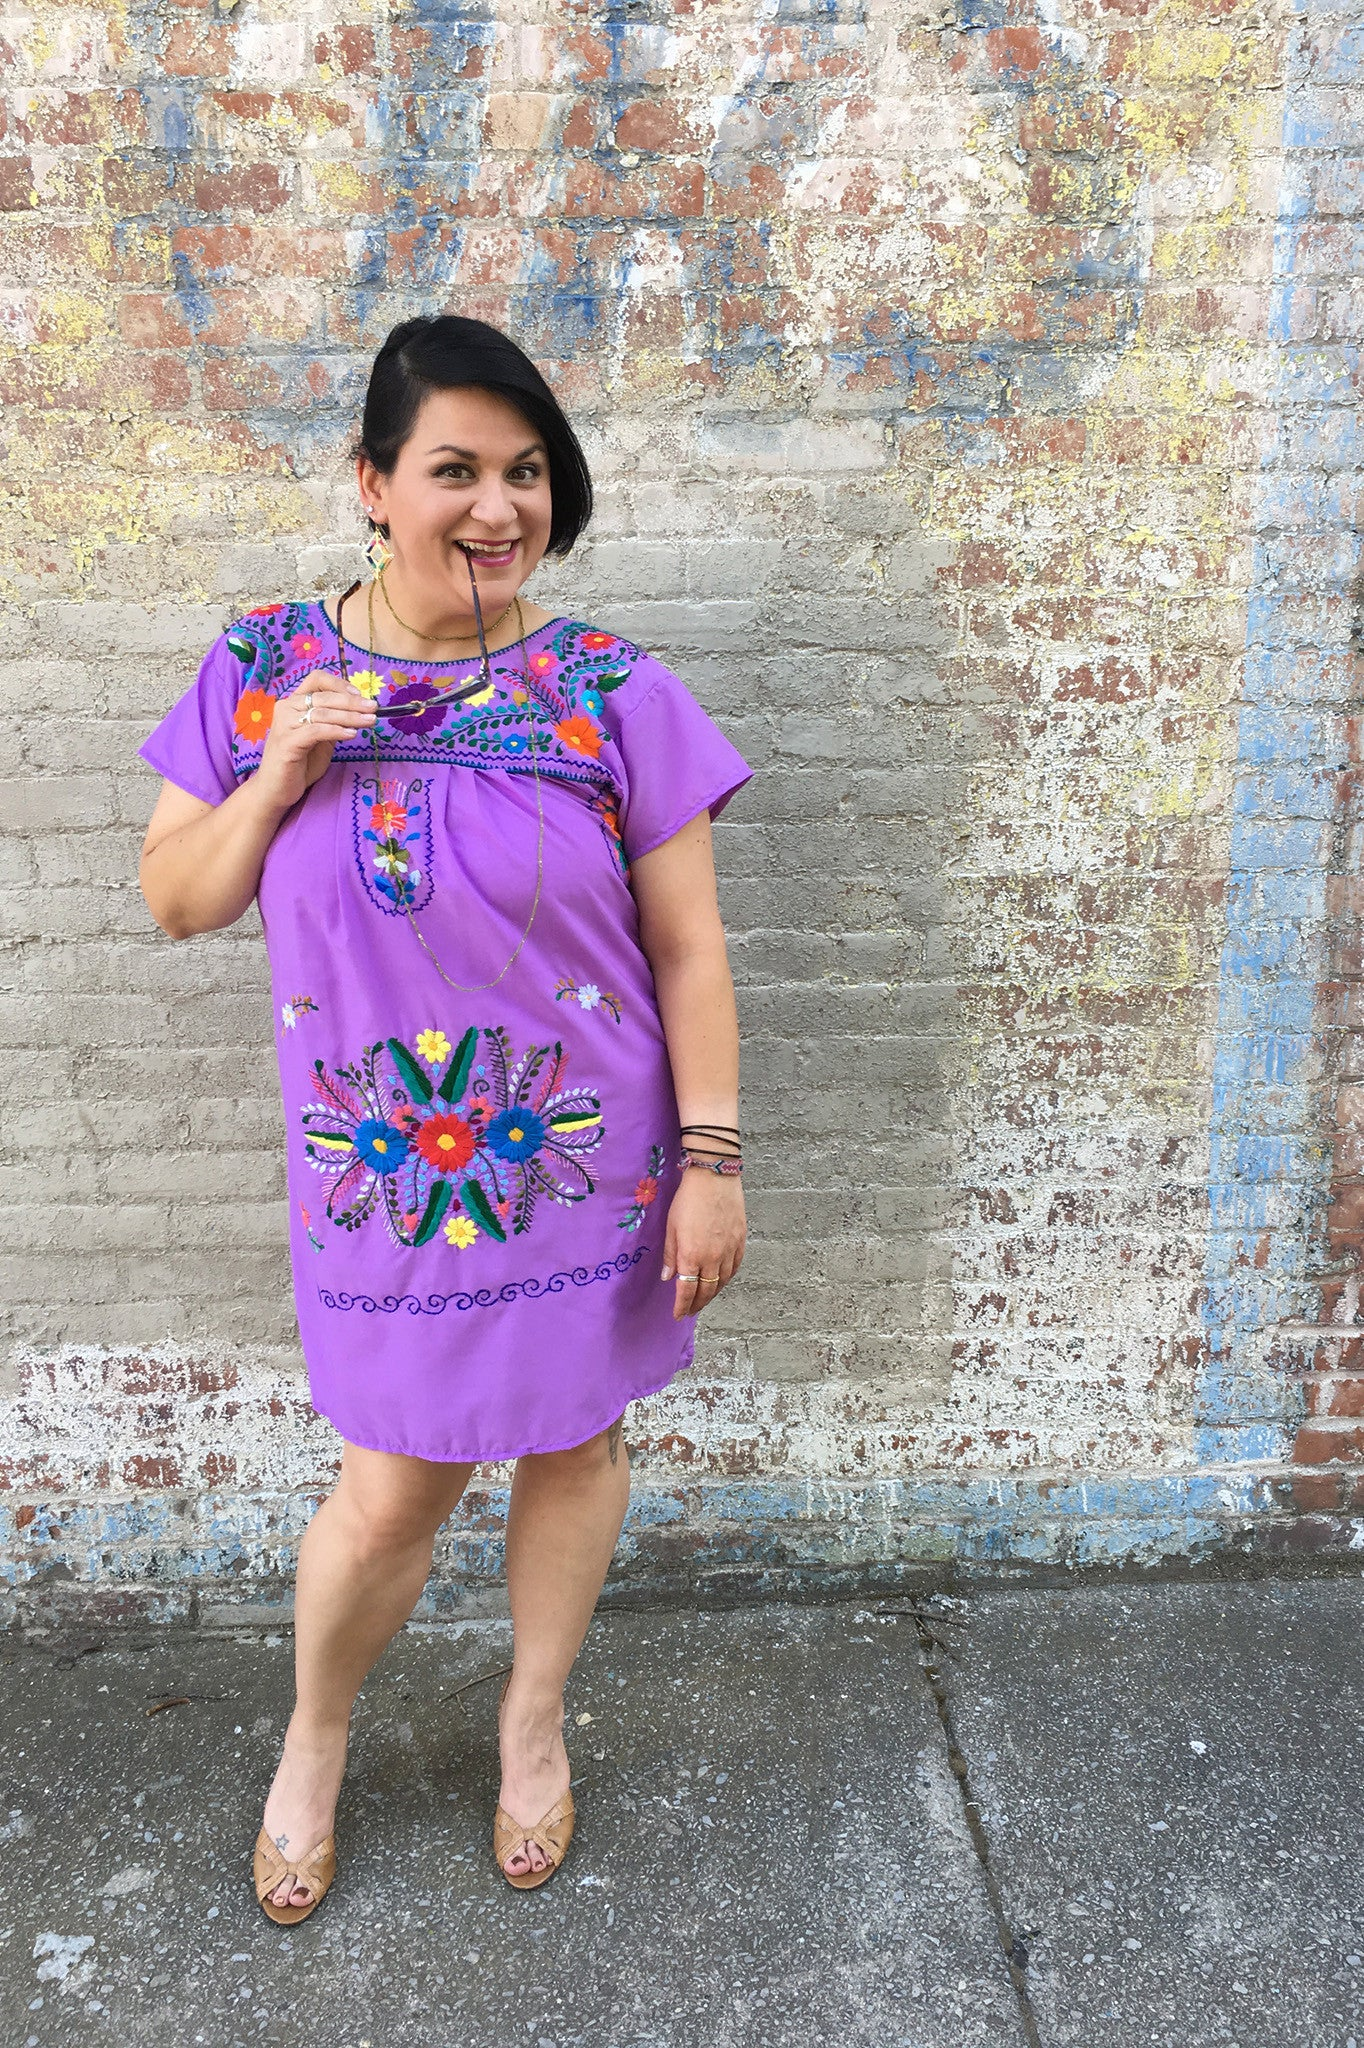 ShopMucho models women's Mexican dress in purple with embroidered flowers